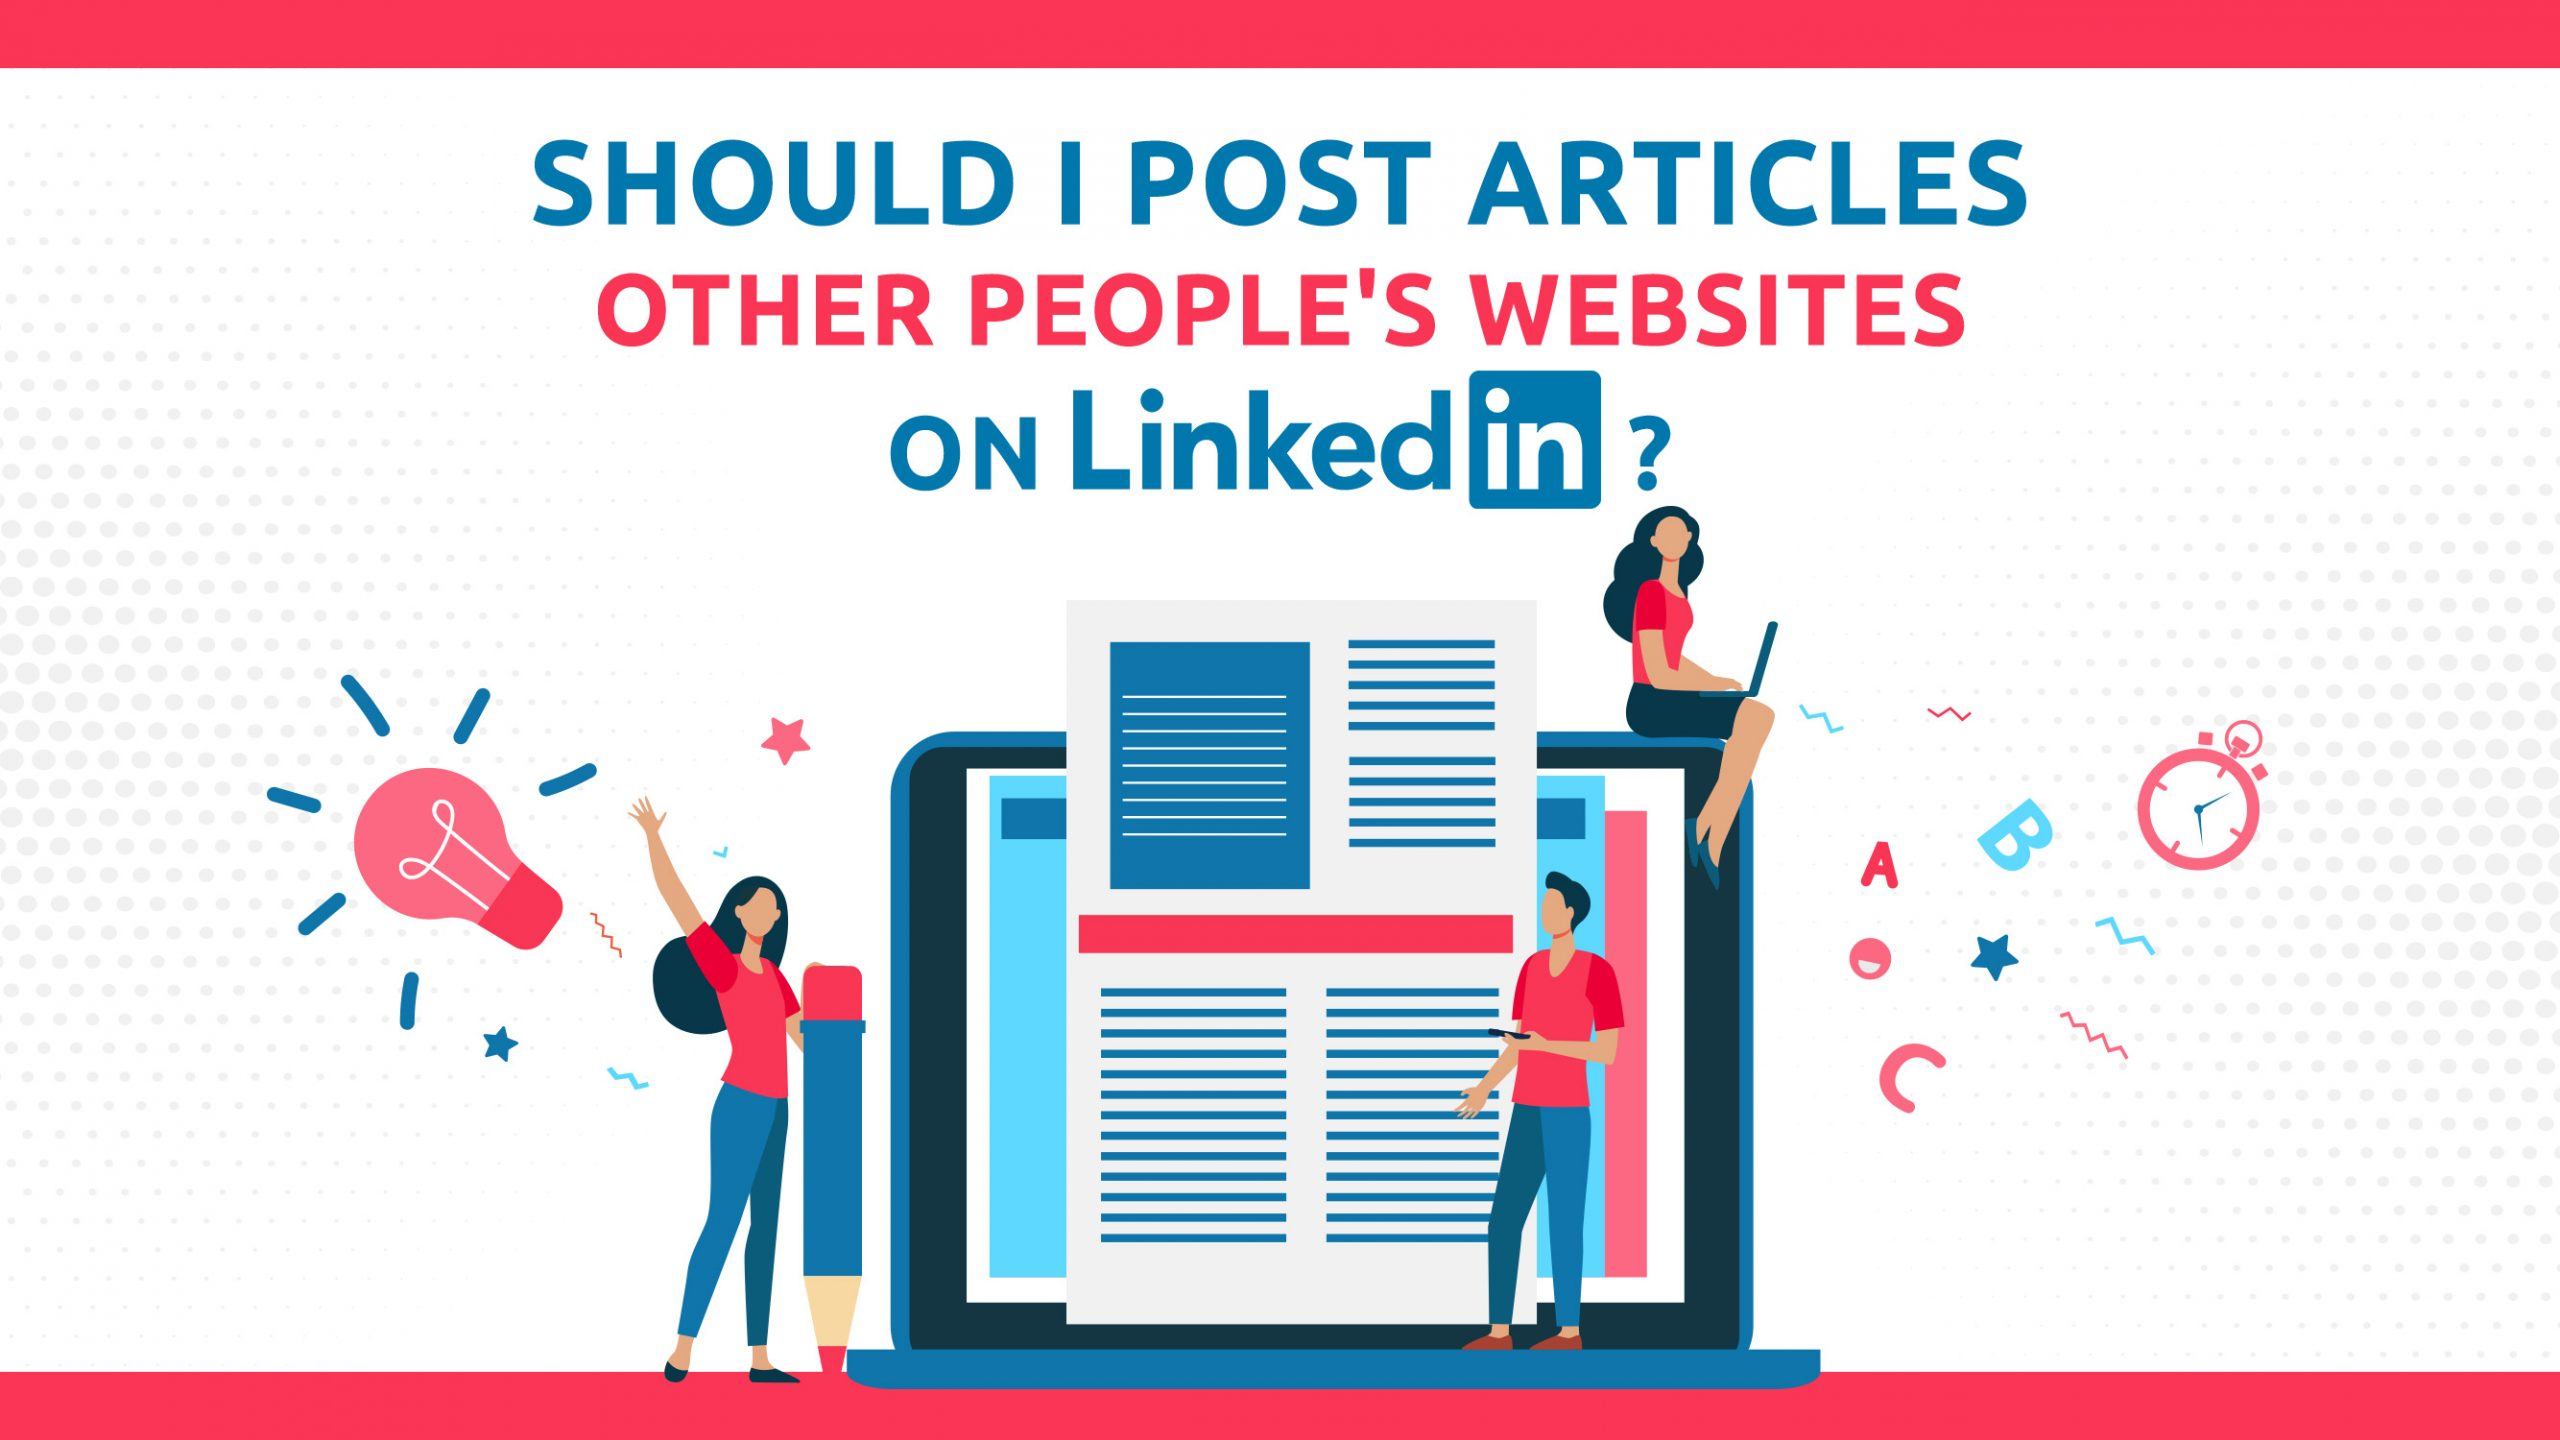 Should I Post Articles From Other People's Websites On LinkedIn?